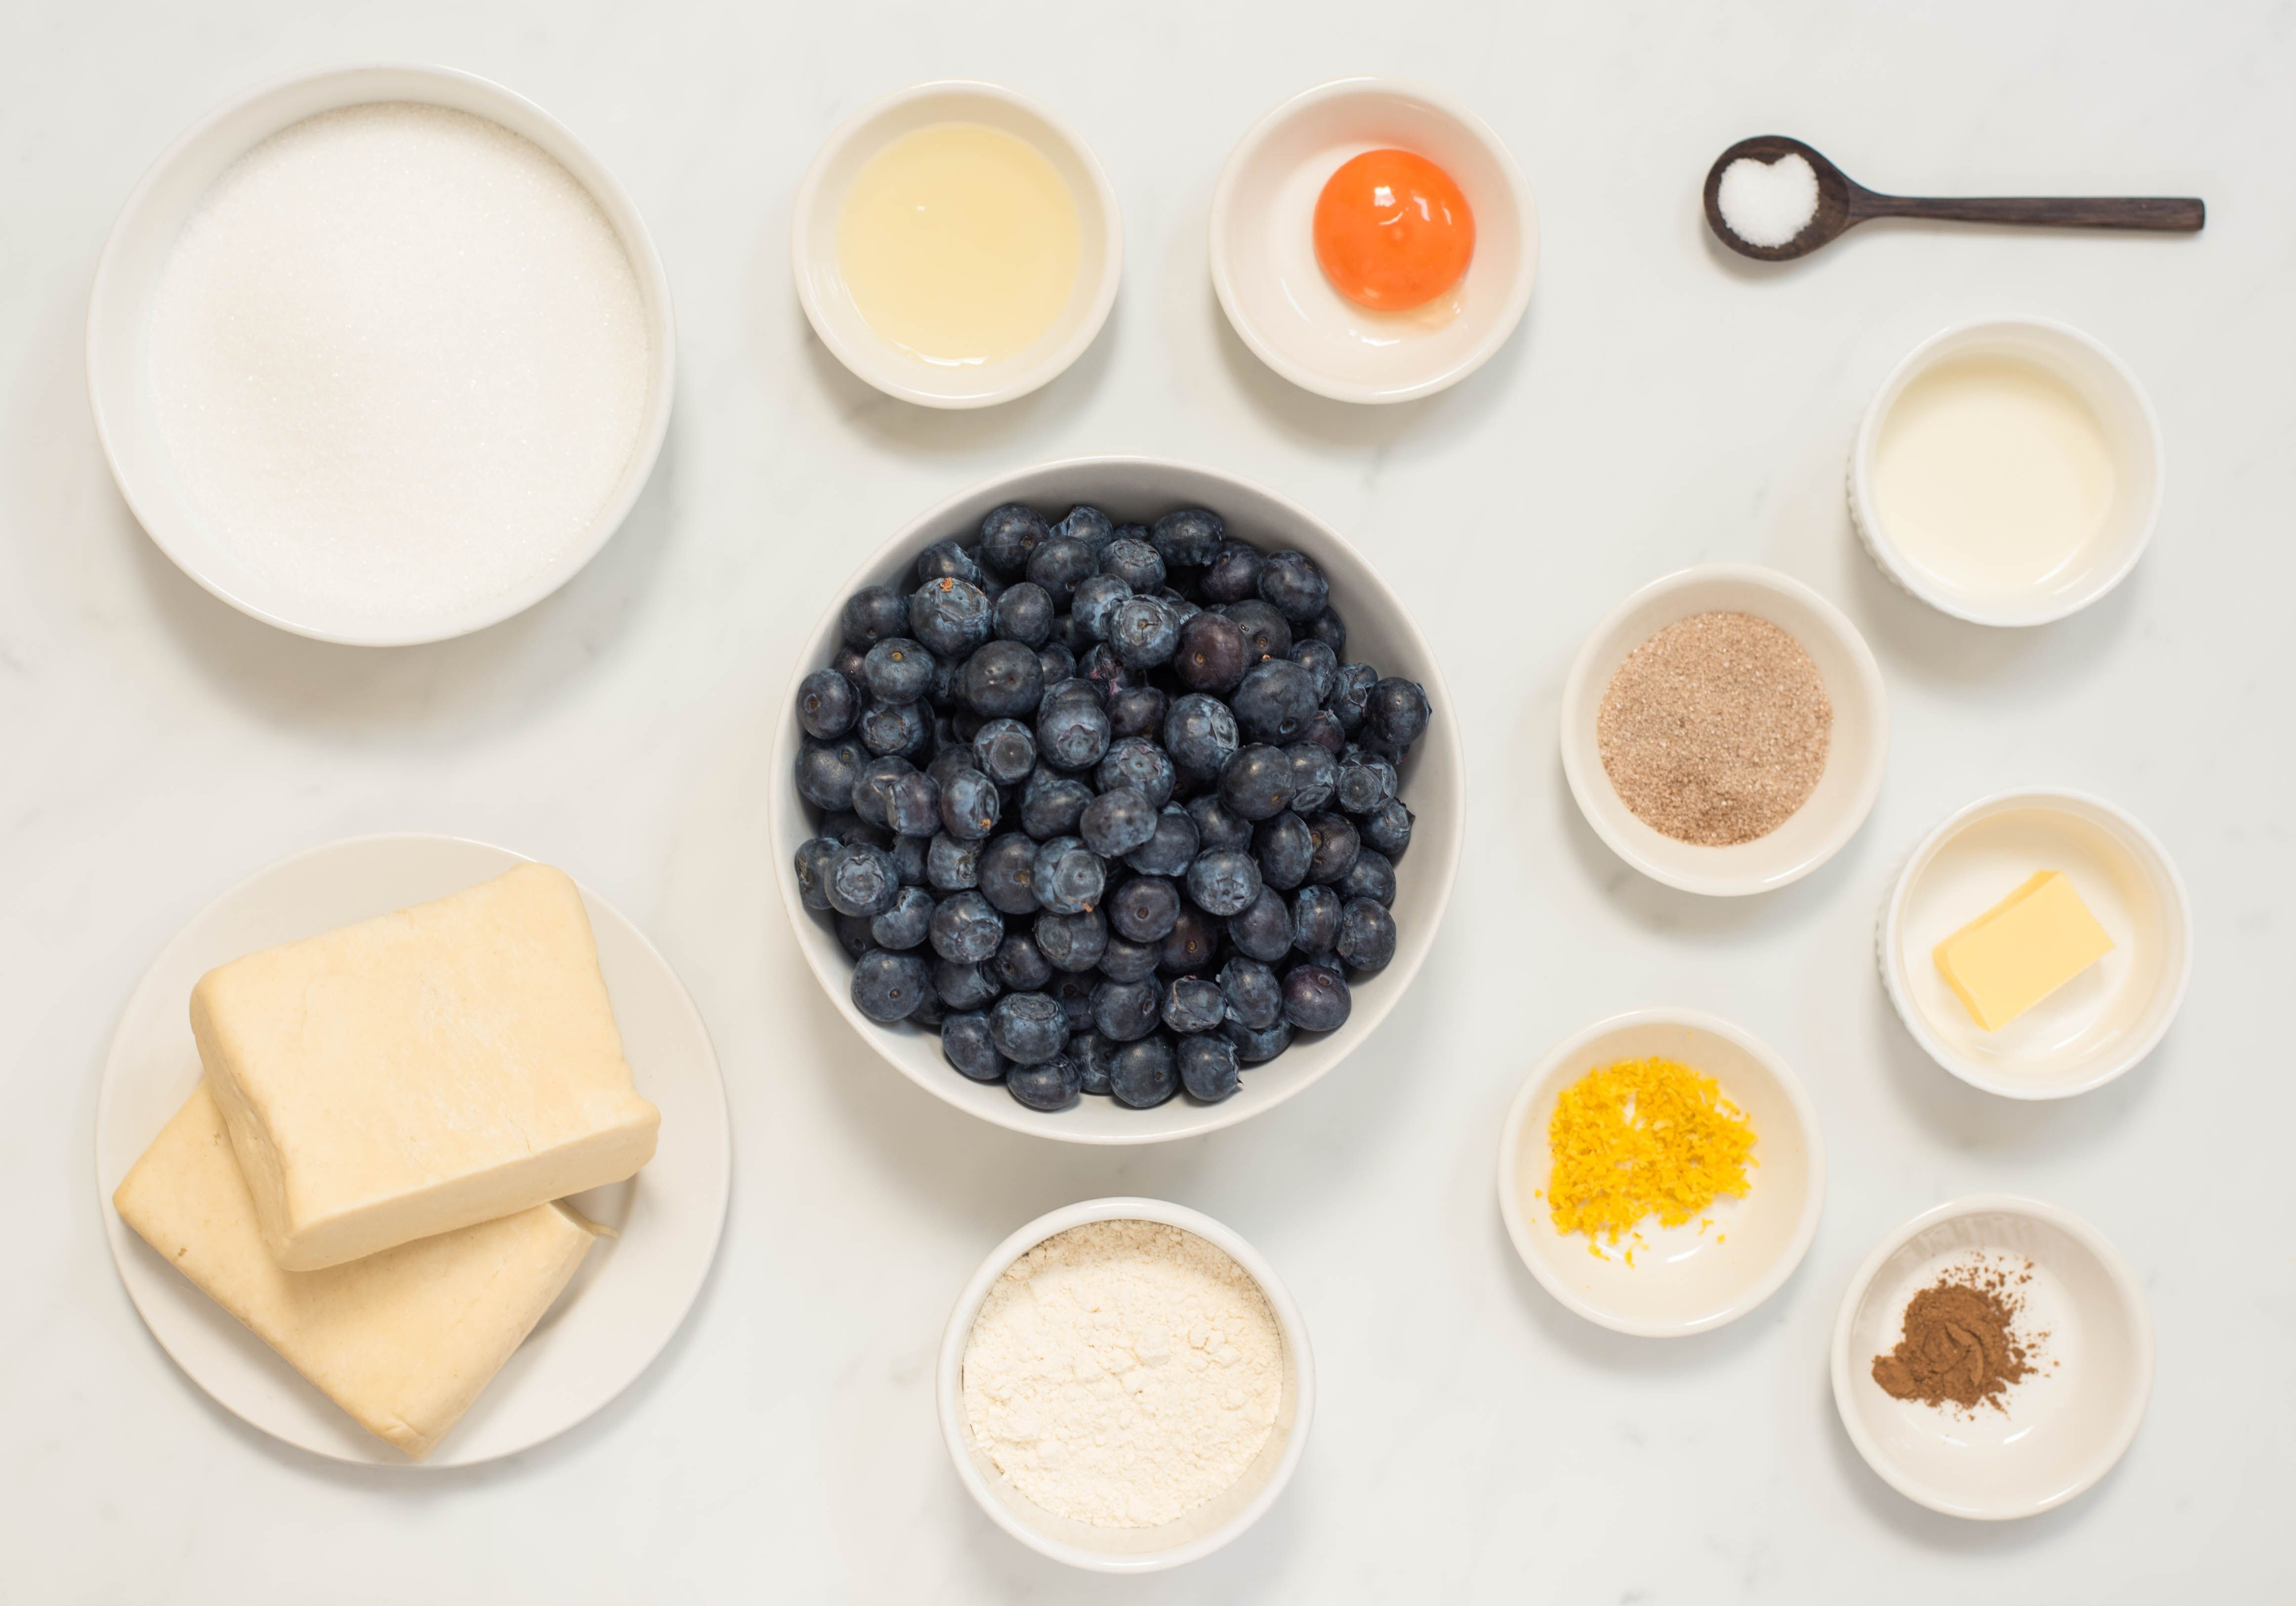 Ingredients for double crust blueberry pie